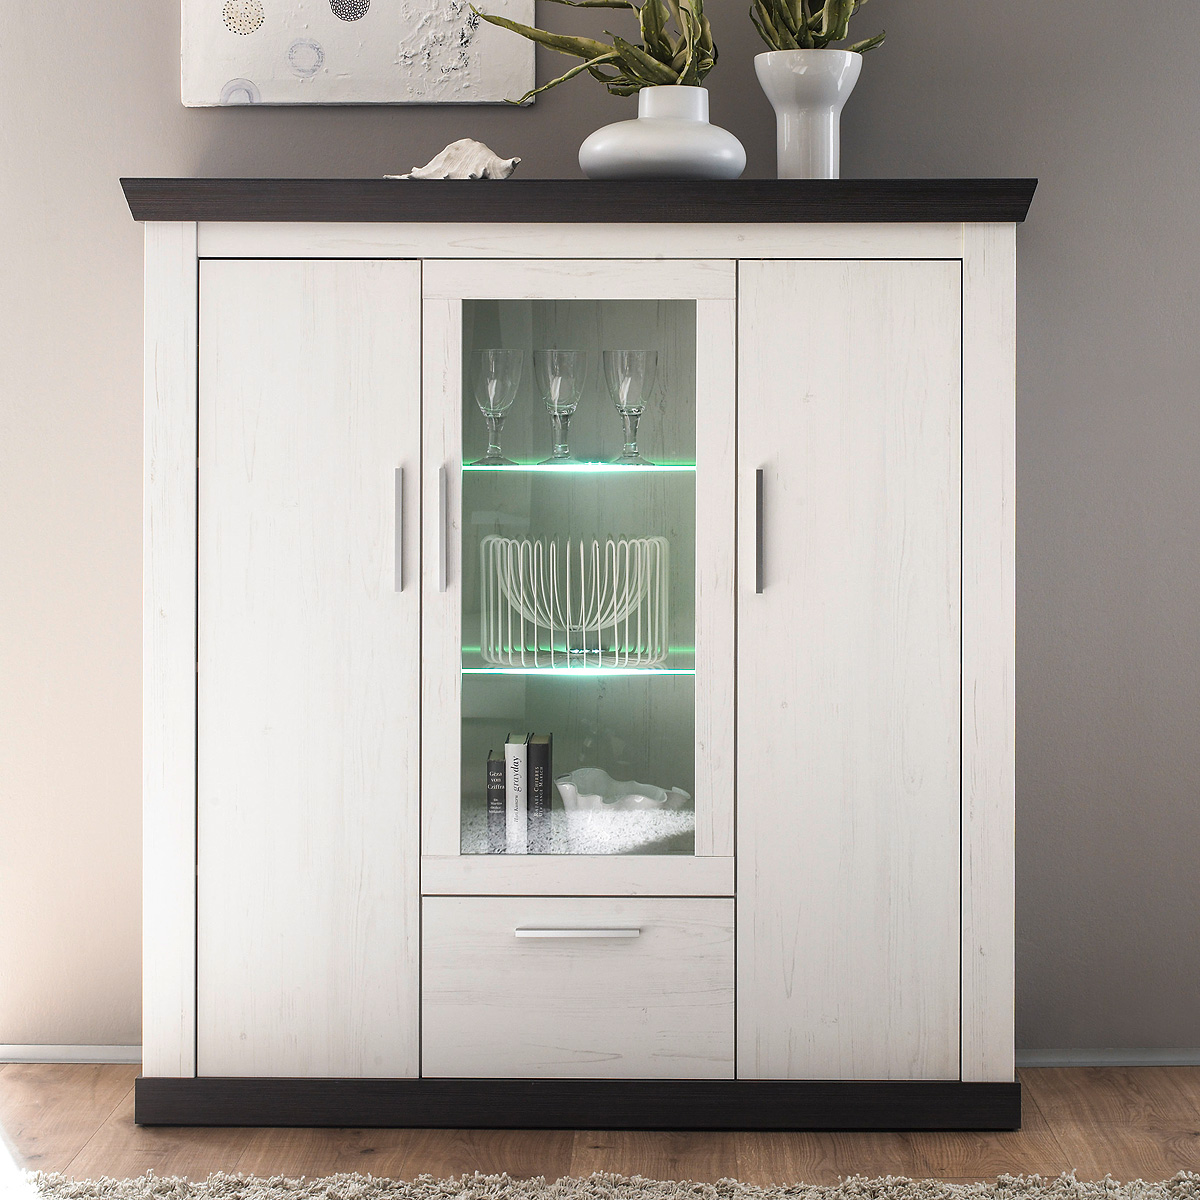 highboard tiena vitrine buffet schrank in pinie wei und wenge haptik inkl led ebay. Black Bedroom Furniture Sets. Home Design Ideas